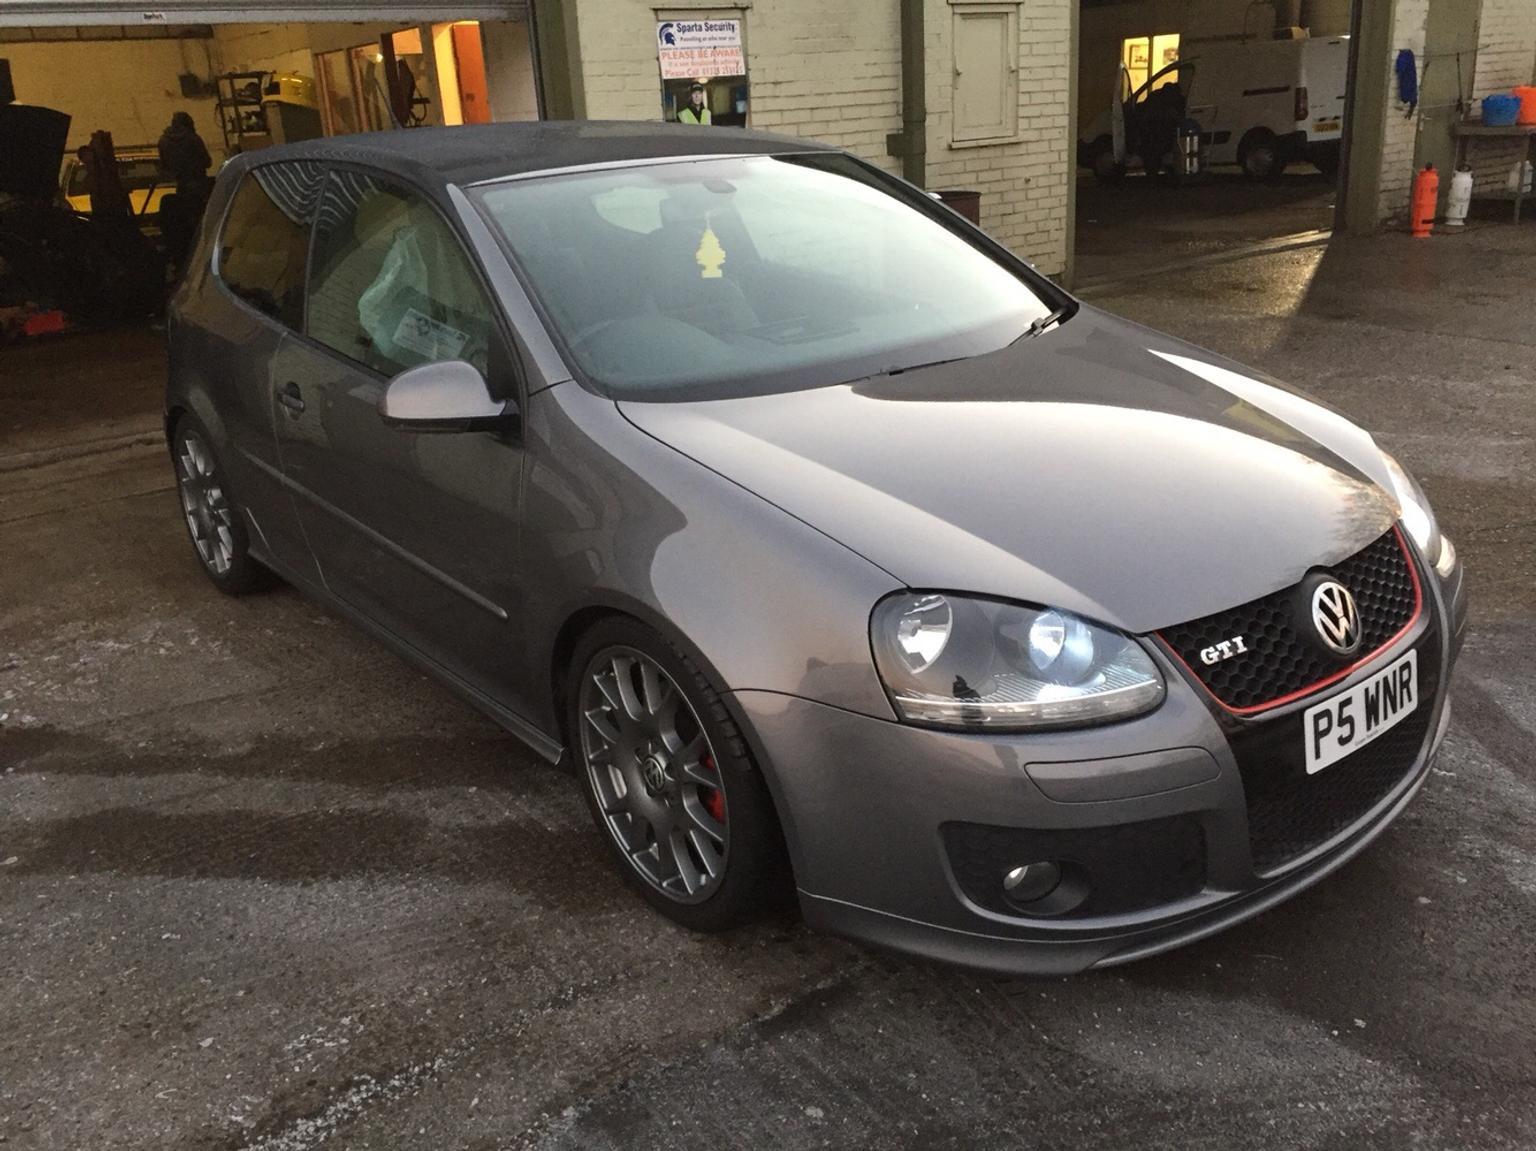 vw golf mk5 gti edition 30 fsh 67k miles in dl1 darlington. Black Bedroom Furniture Sets. Home Design Ideas